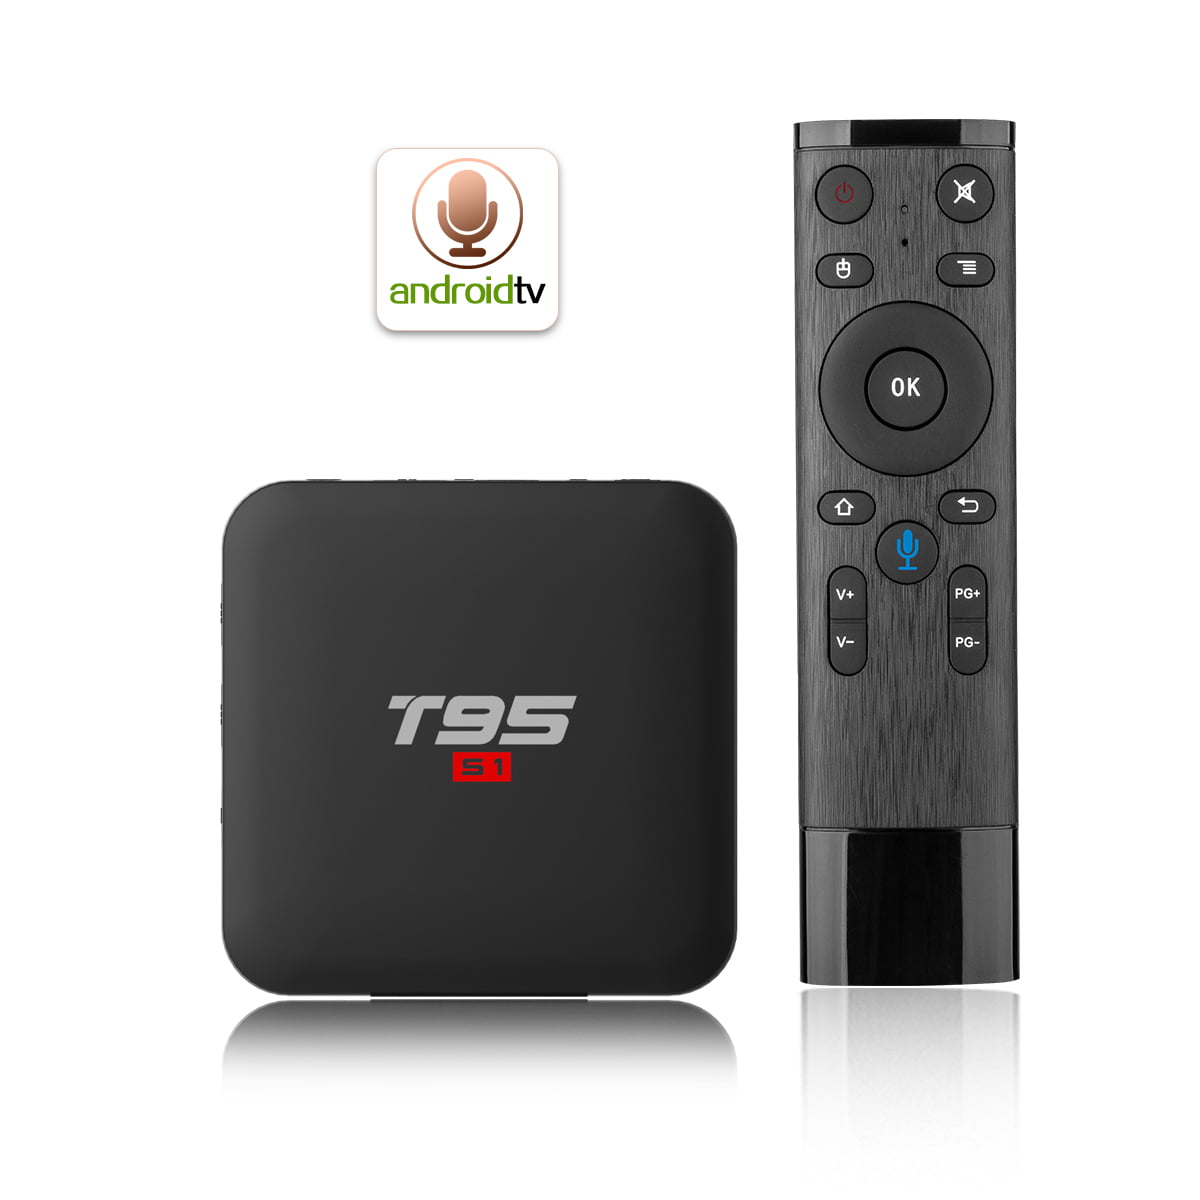 Firefly T95 S1 Android Smart TV Box 64bit Quad H6 2Ghz 2G DDR3 16G flash Android 7.1 7